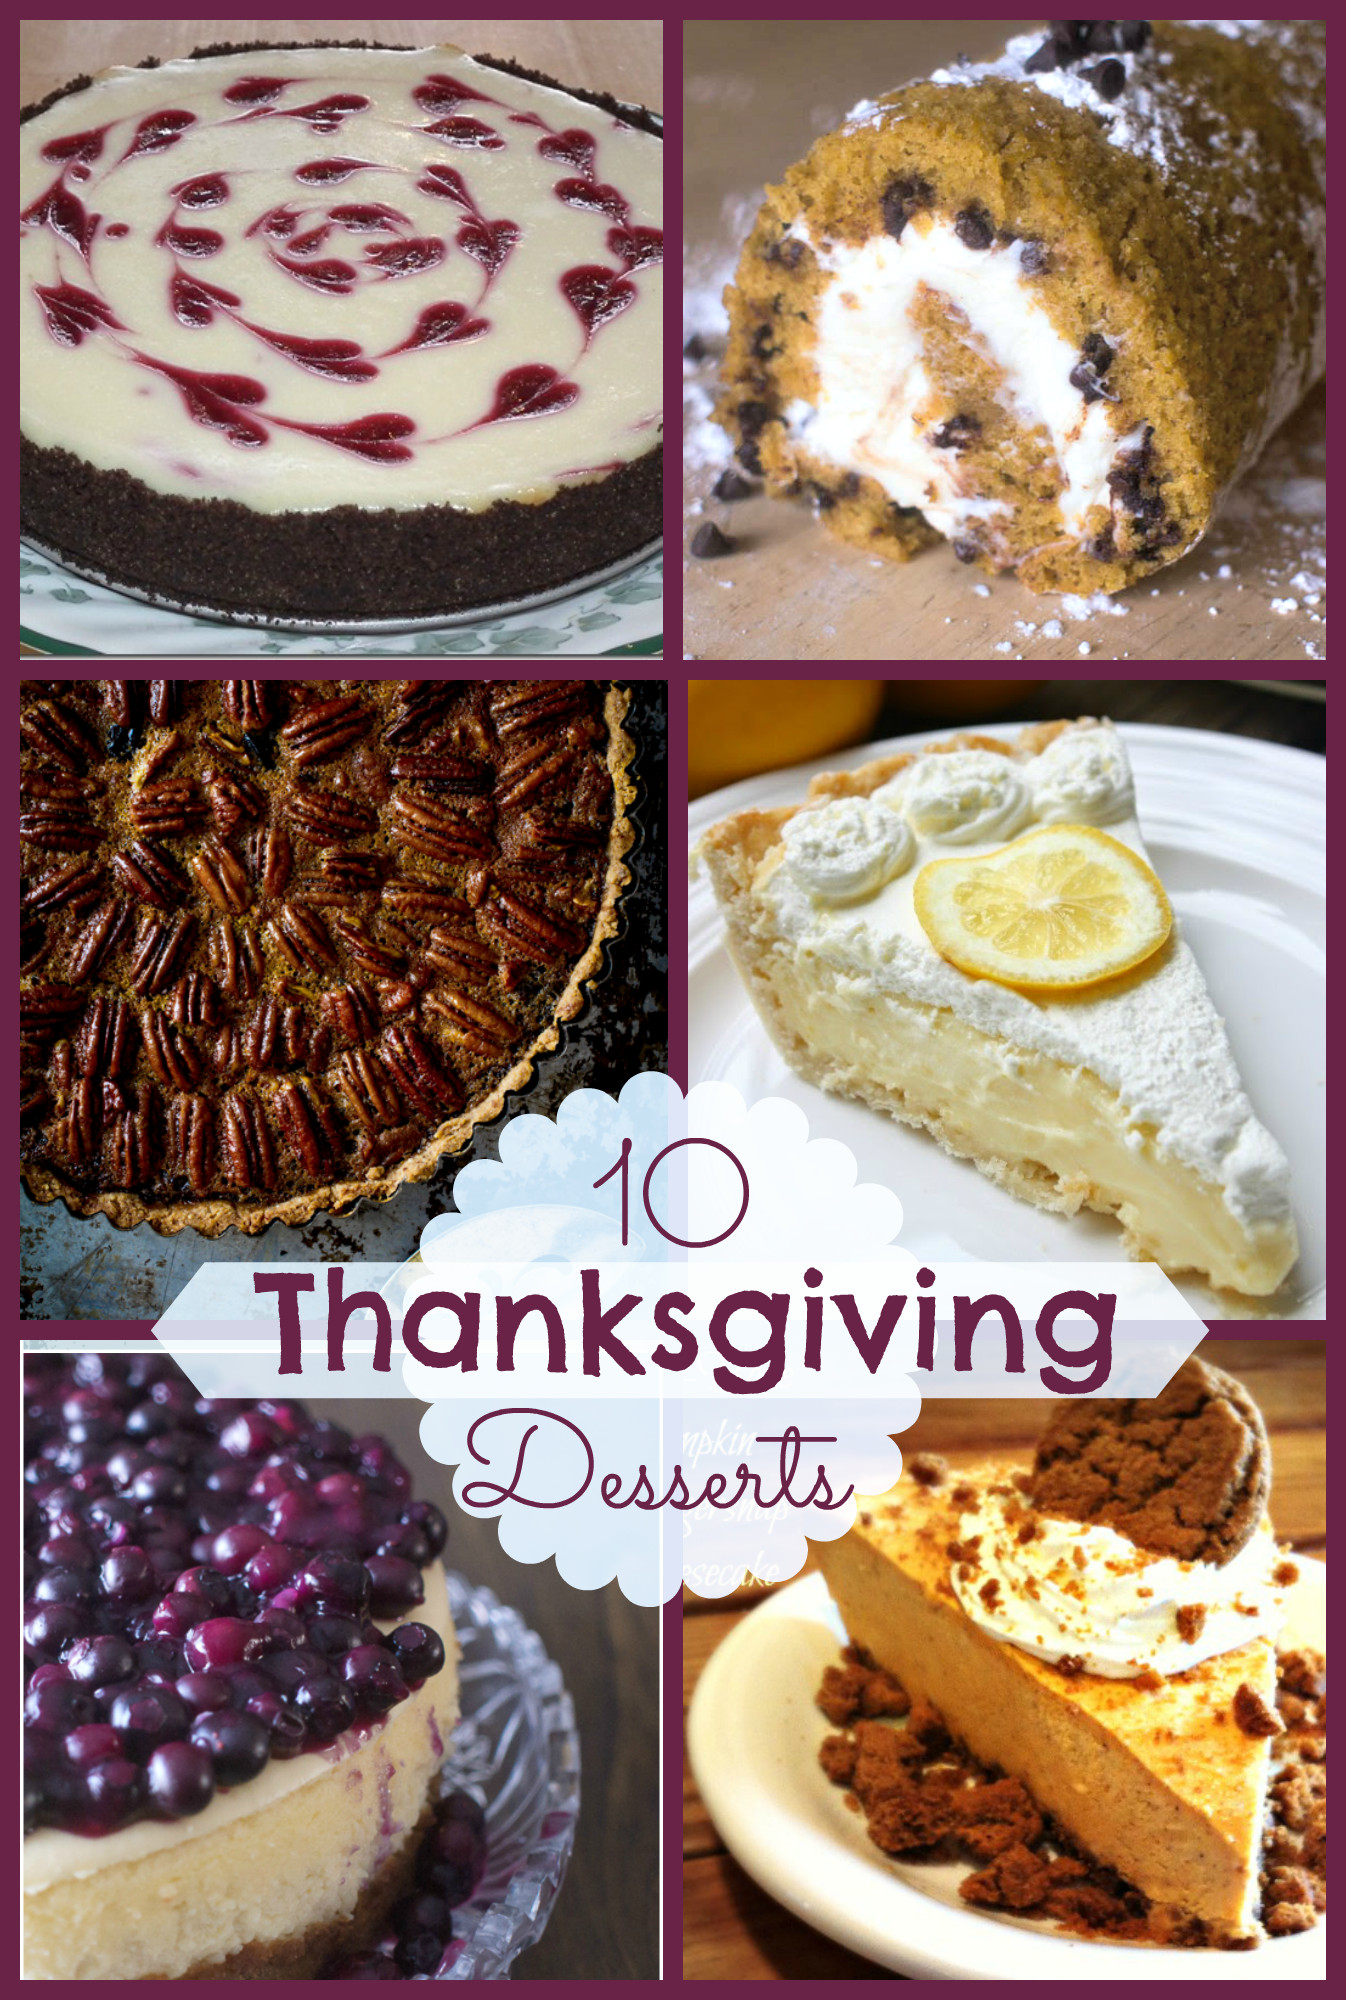 Favorite Thanksgiving Desserts  10 Fabulous Thanksgiving Desserts